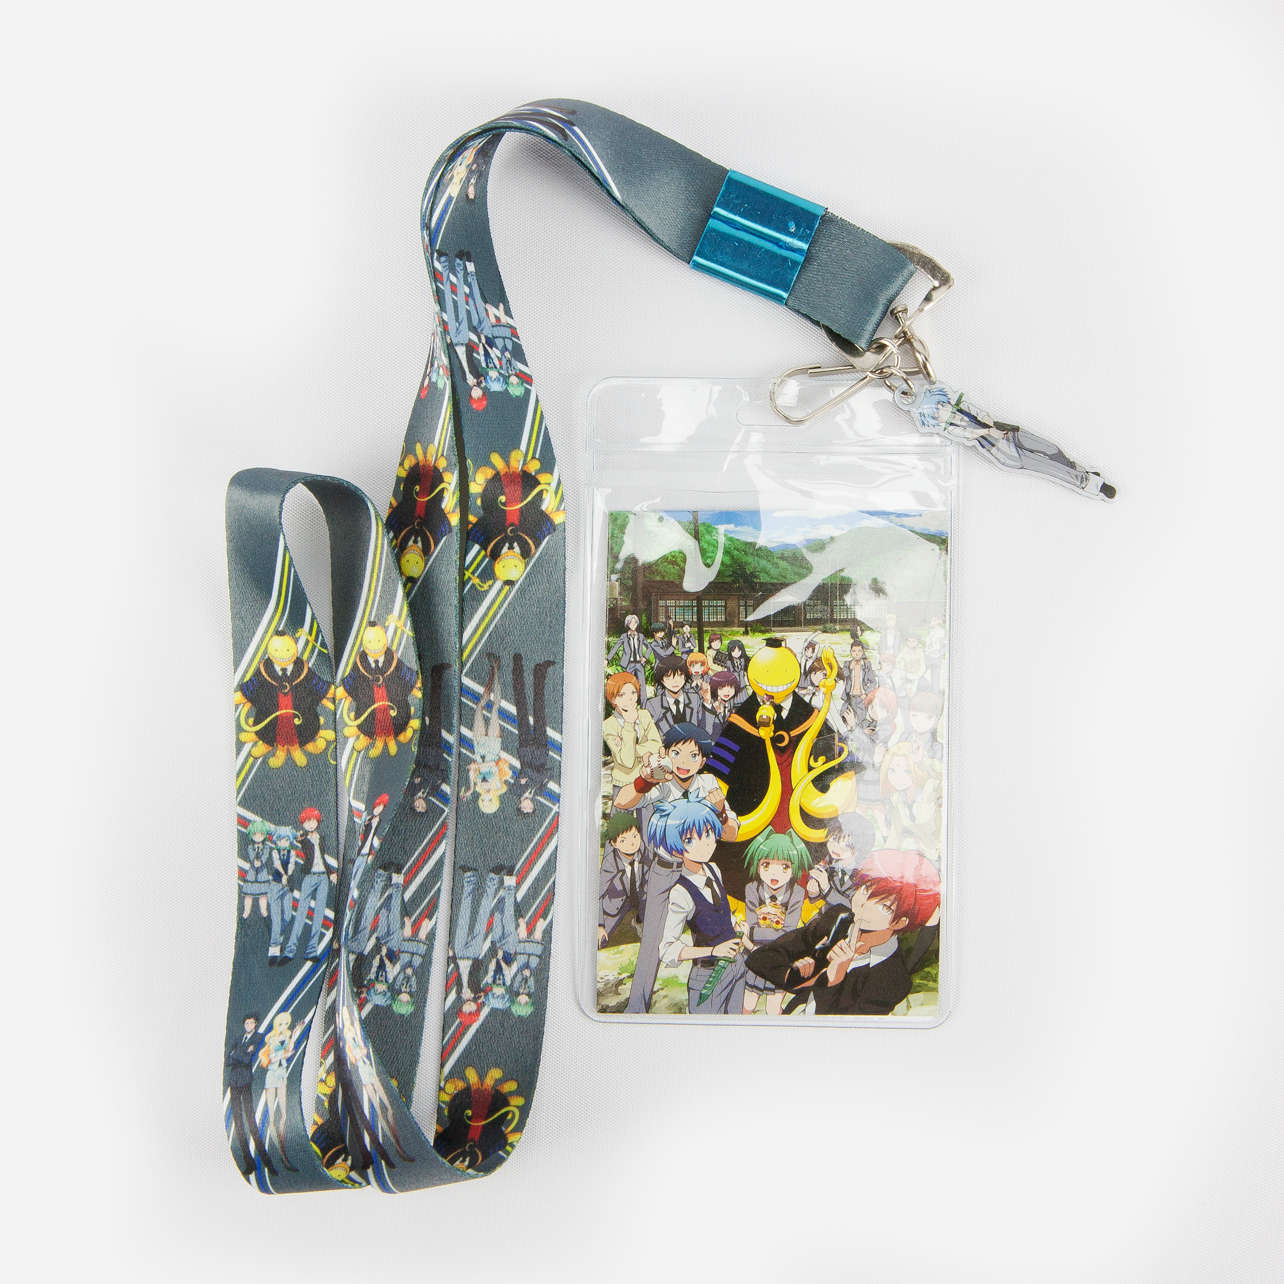 Lanyard Accessories